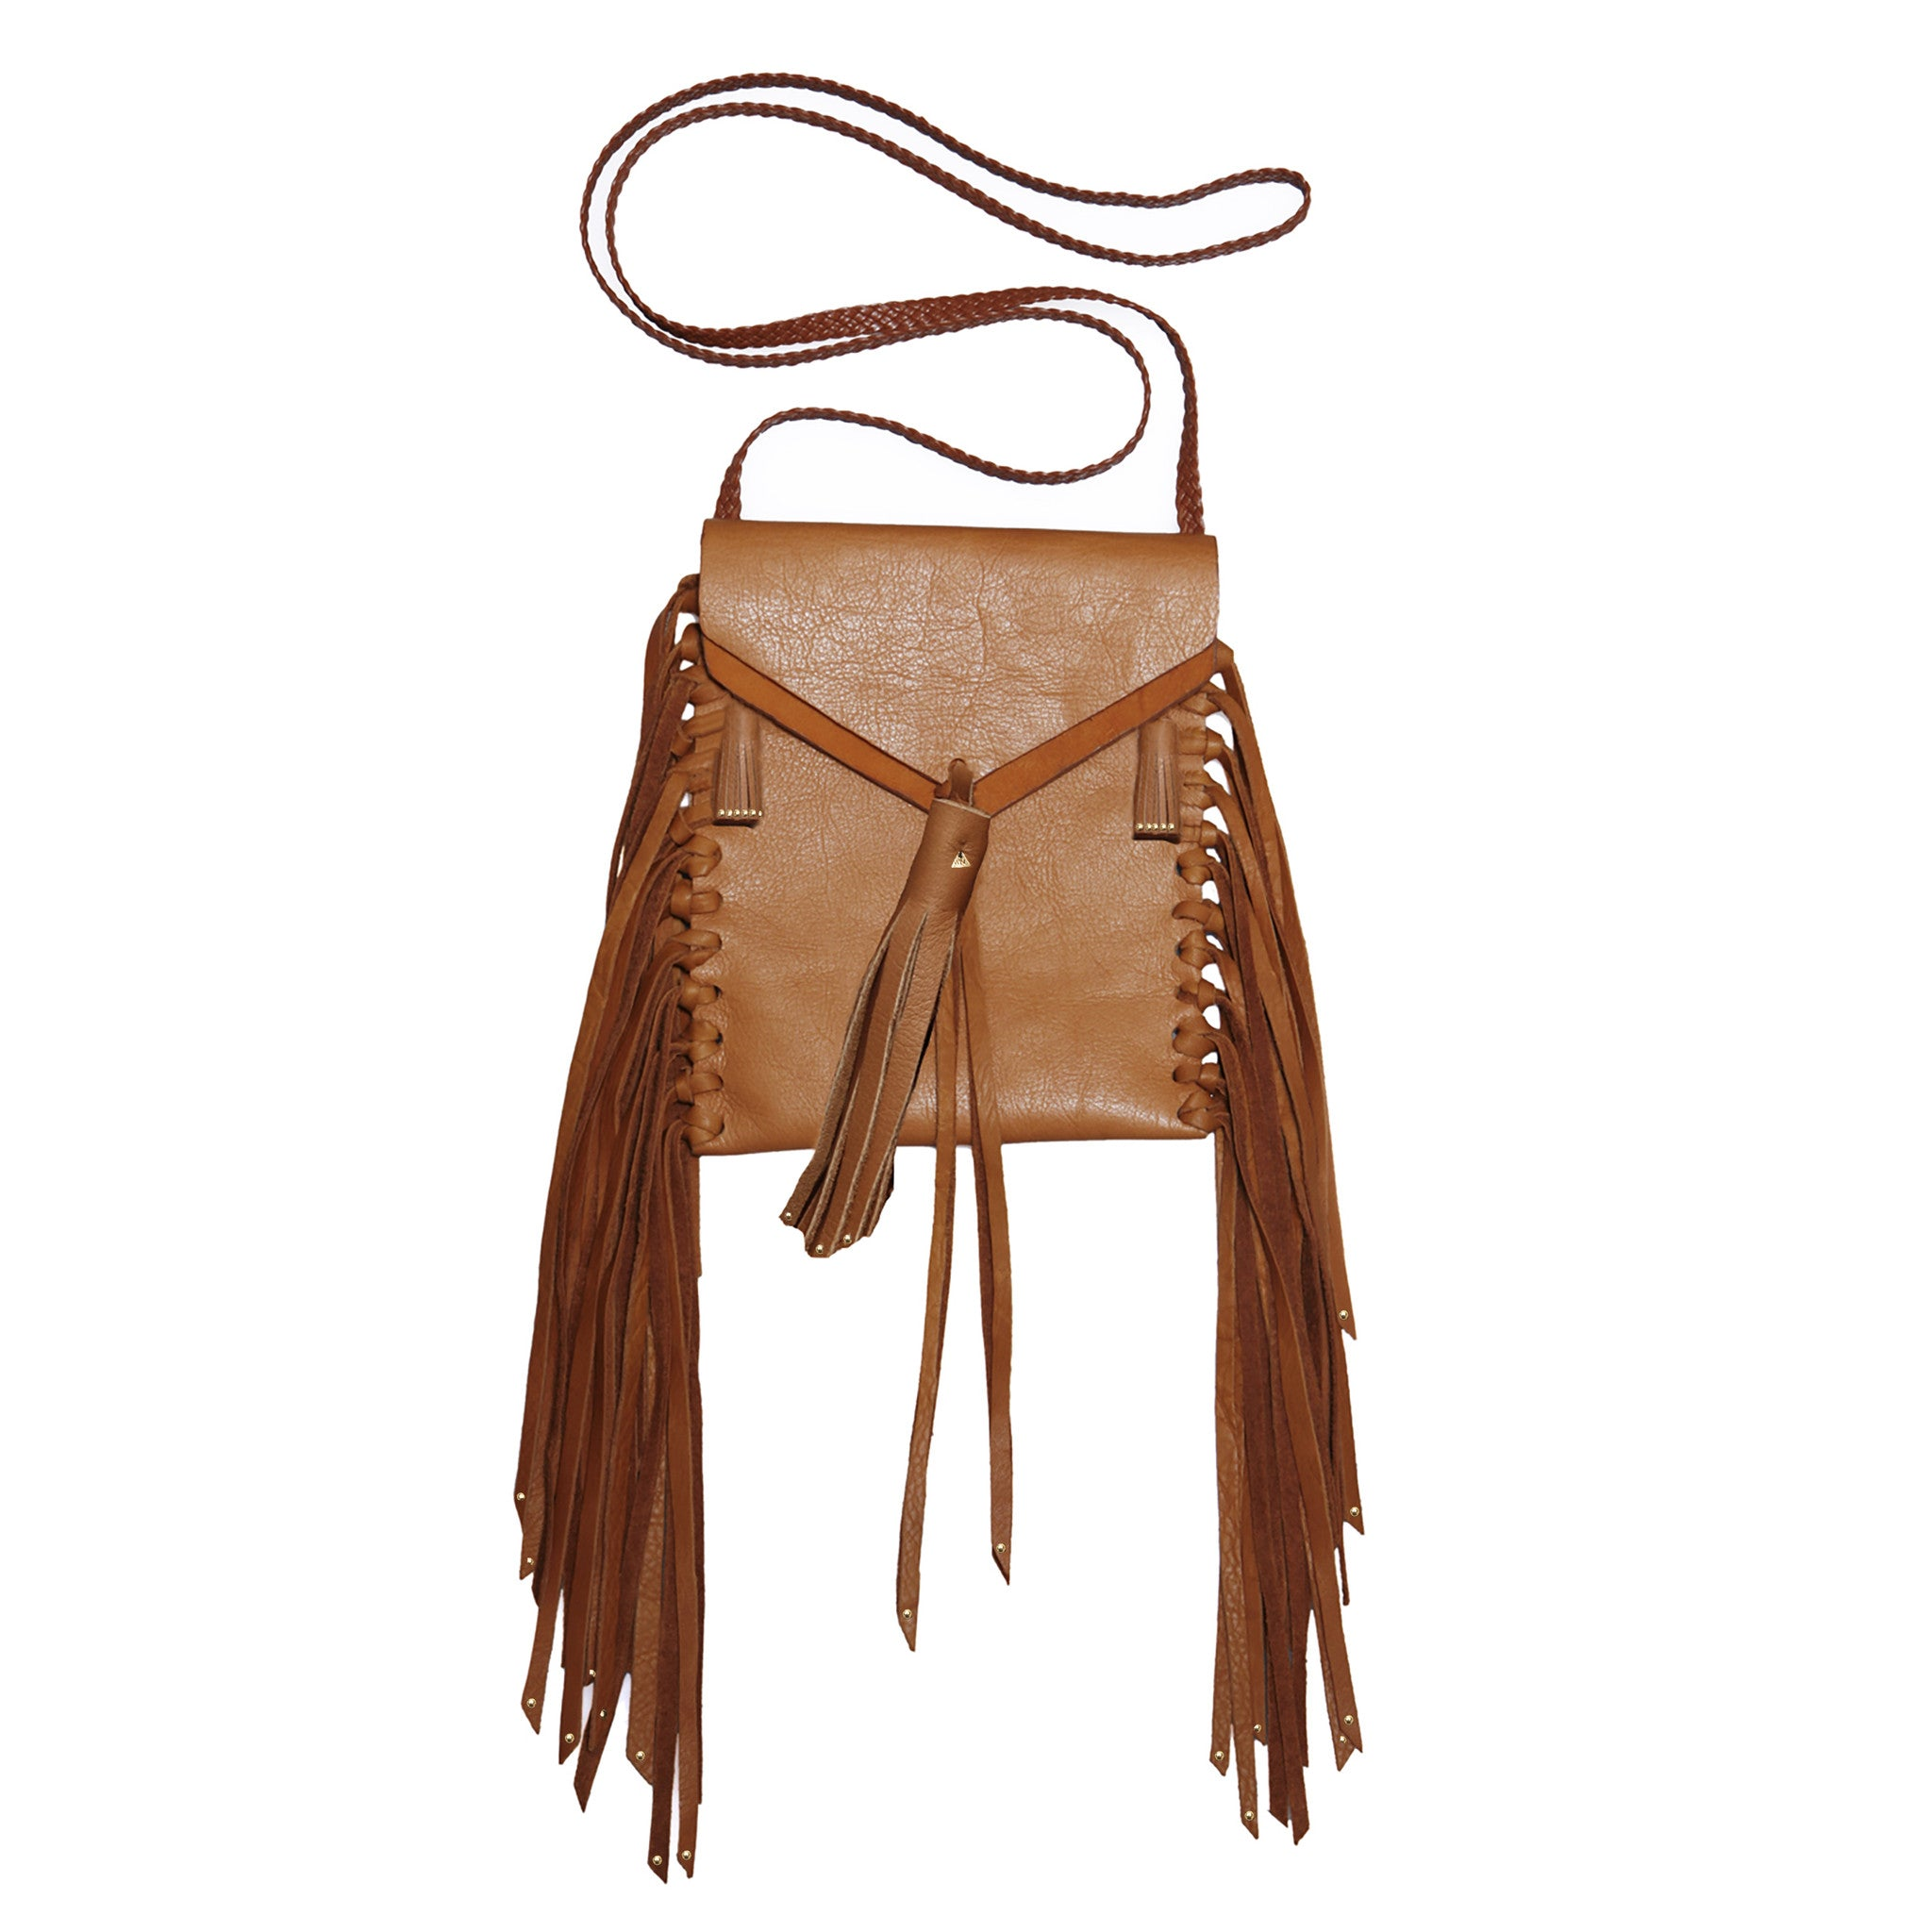 Canyon Carmel Brown Tan Studded Tobacco Bag Wendy Nichol Handbag Purse Designer Handmade in NYC Fringe Boho Cross Body Braided Strap